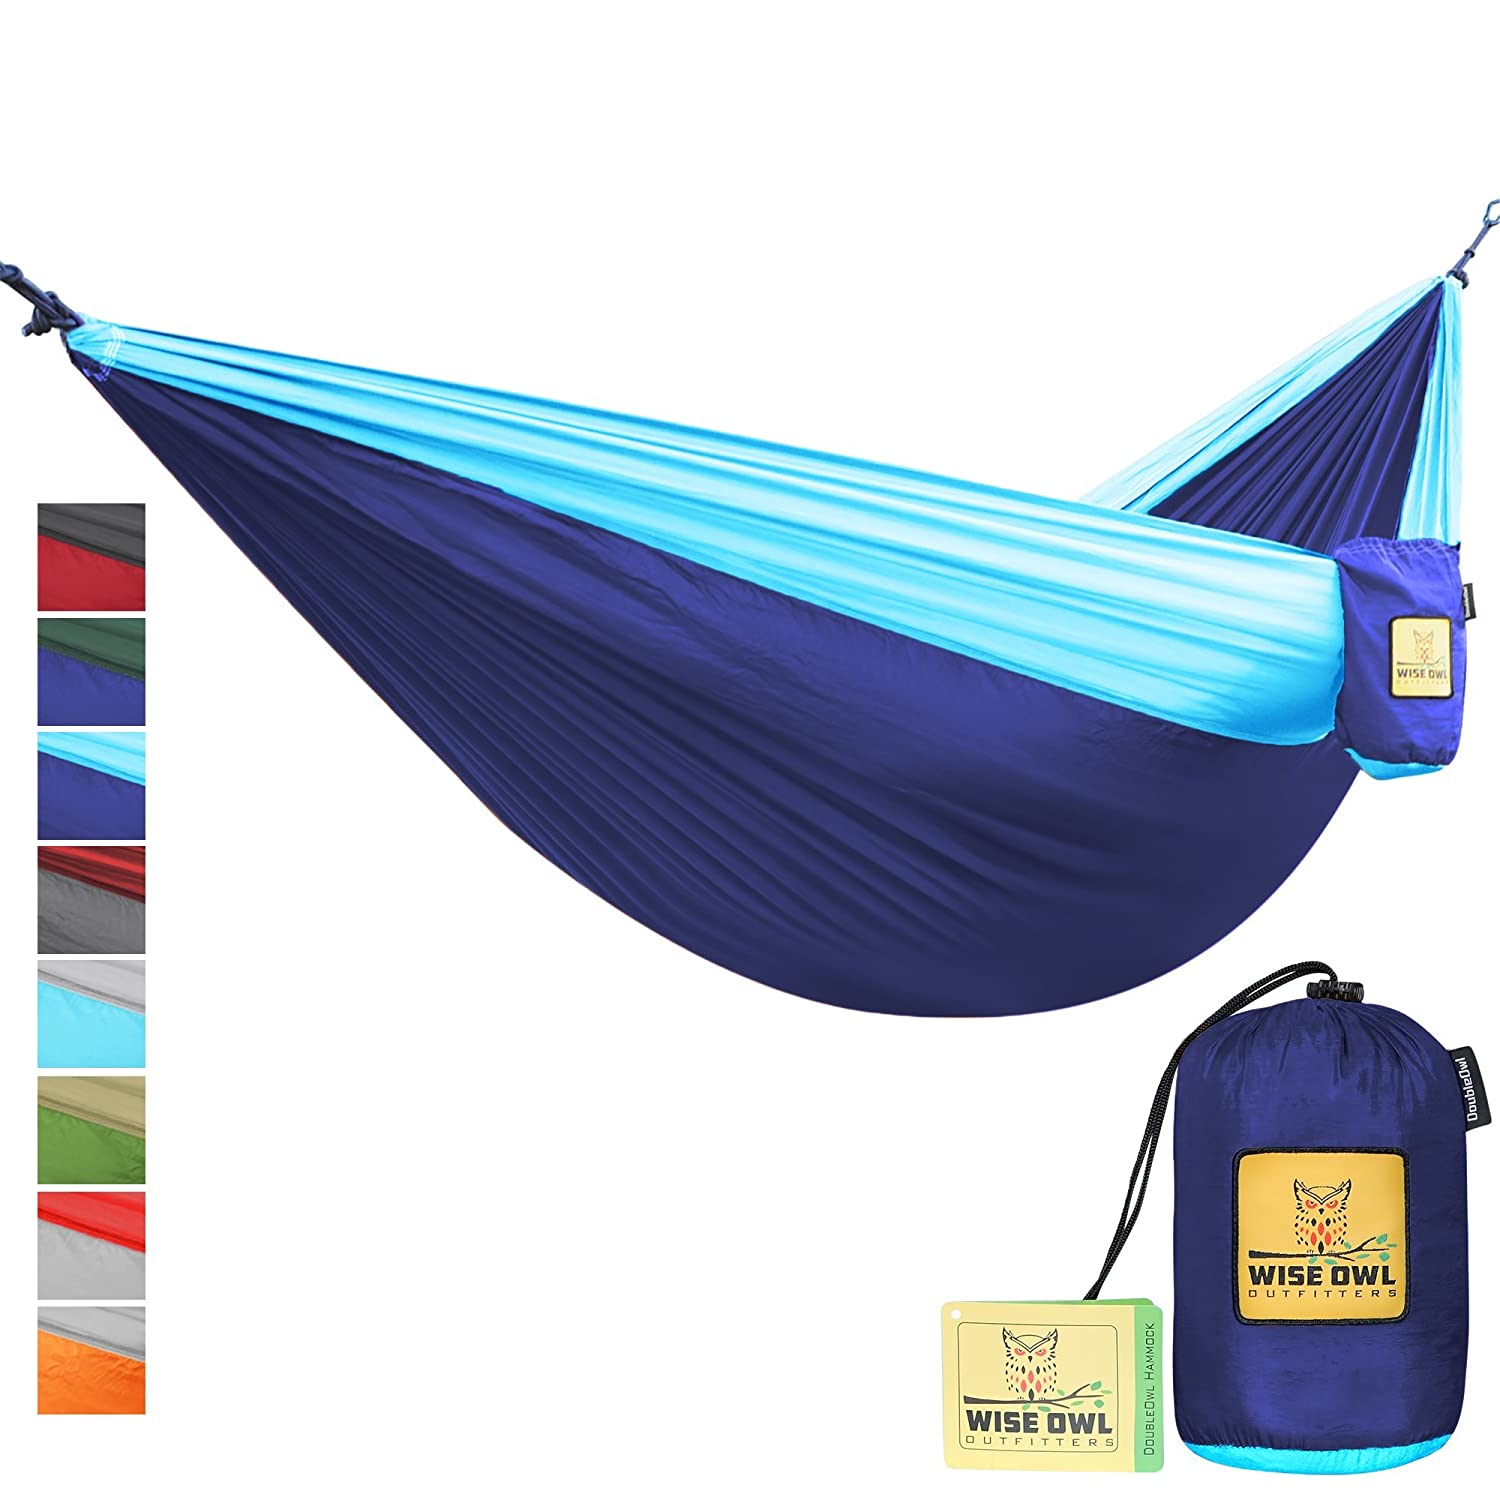 Wise Owl Outfitters Single & Double Camping Hammocks